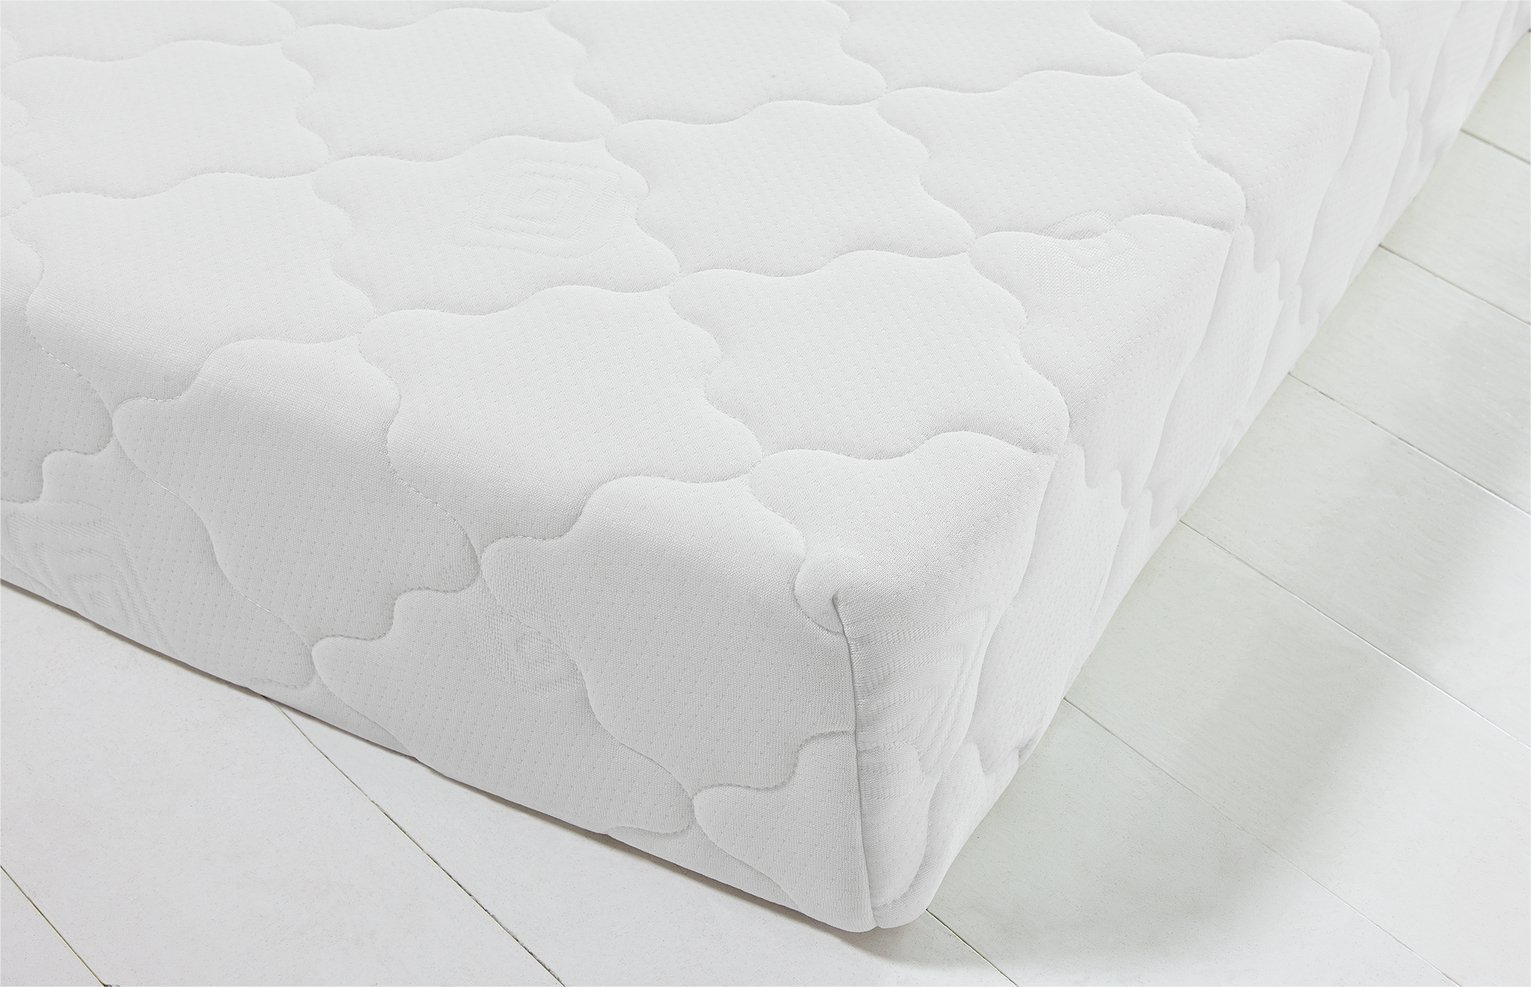 Image of I-Sleep Collect and Go Memory Foam Rolled Kingsize Mattress